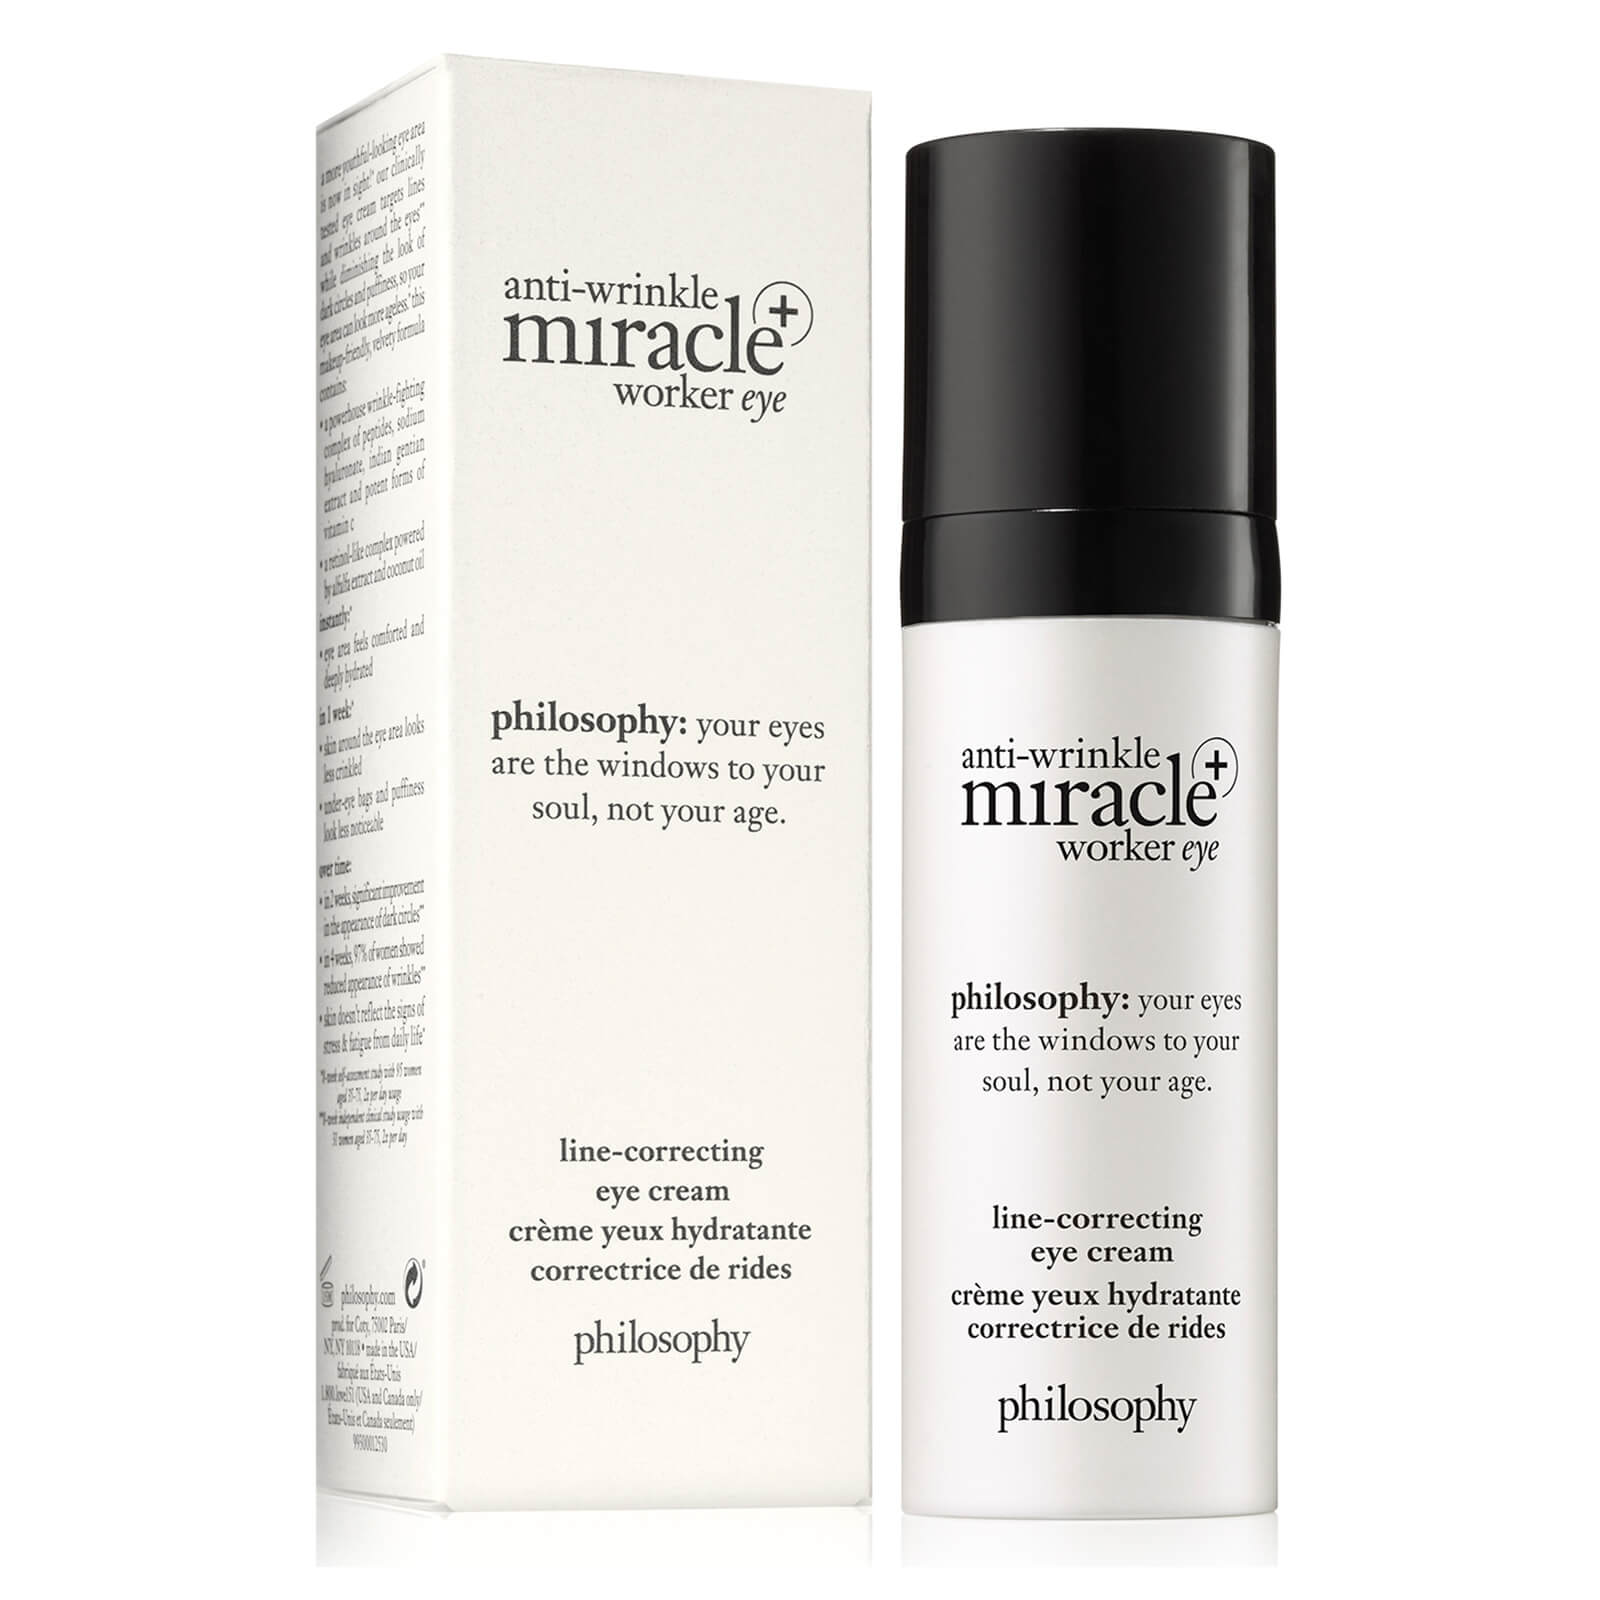 philosophy eye cream